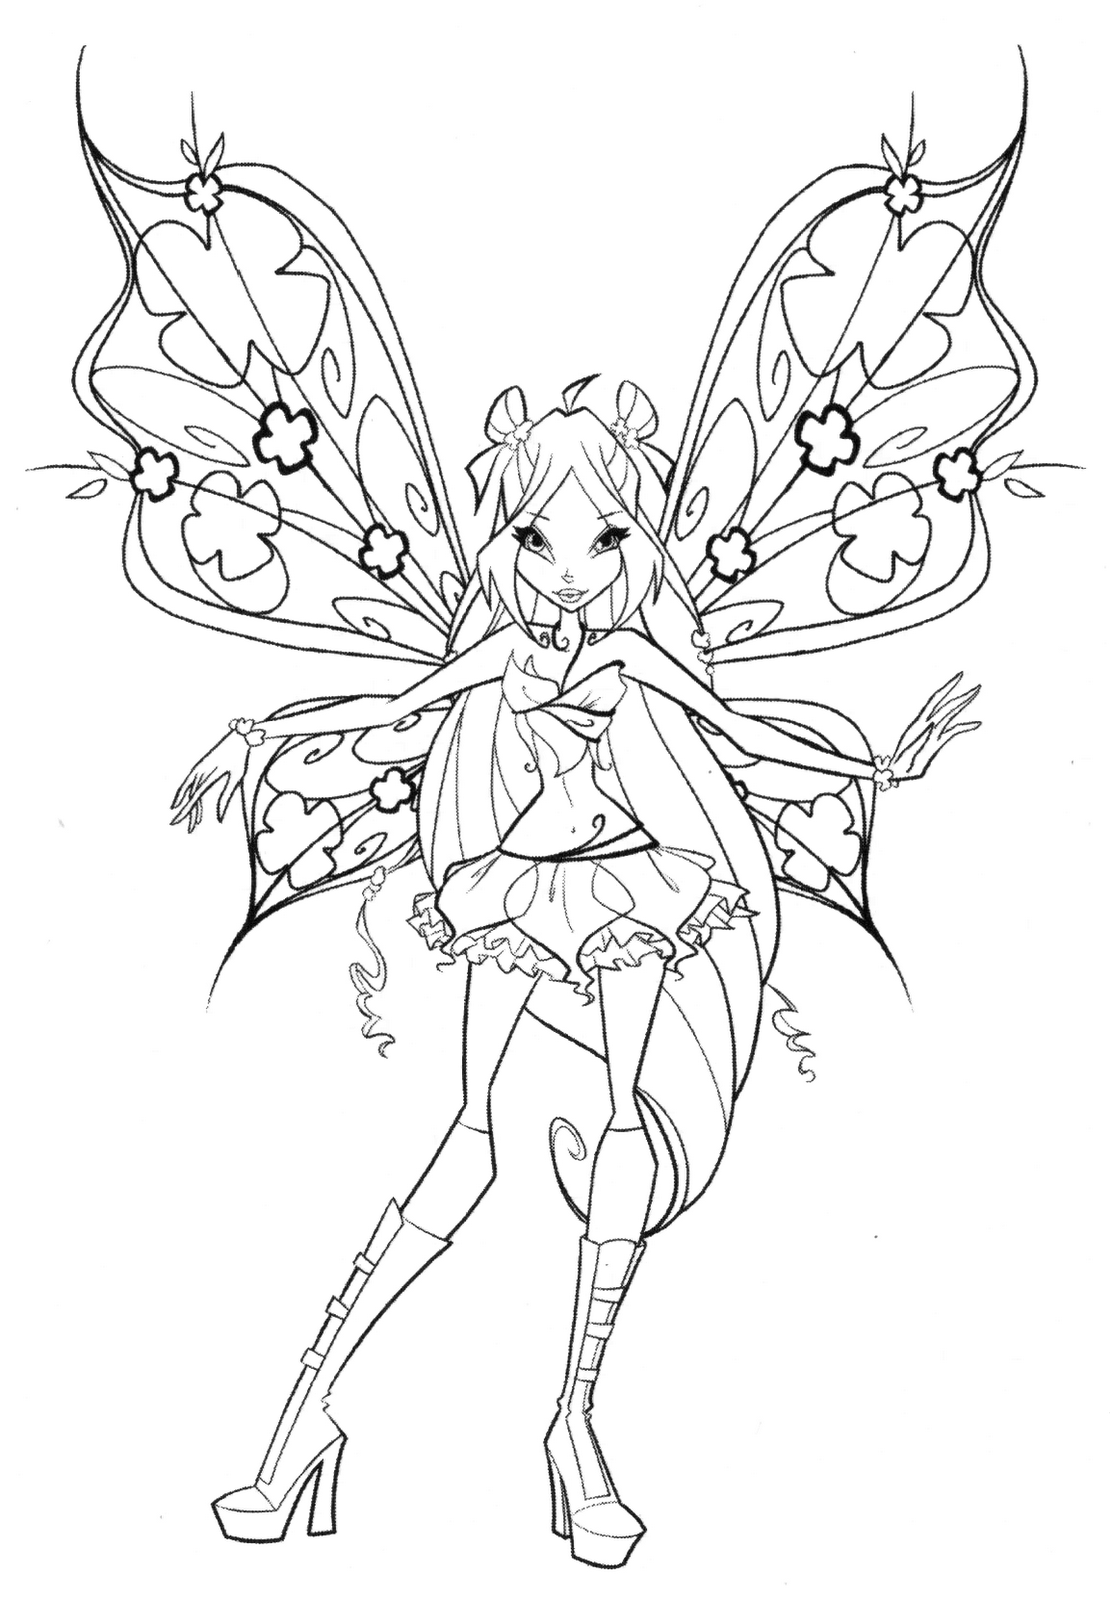 winx believix coloring pages | Winx Club Shines: Colorear: ¡Colorea a las Winx Believix!